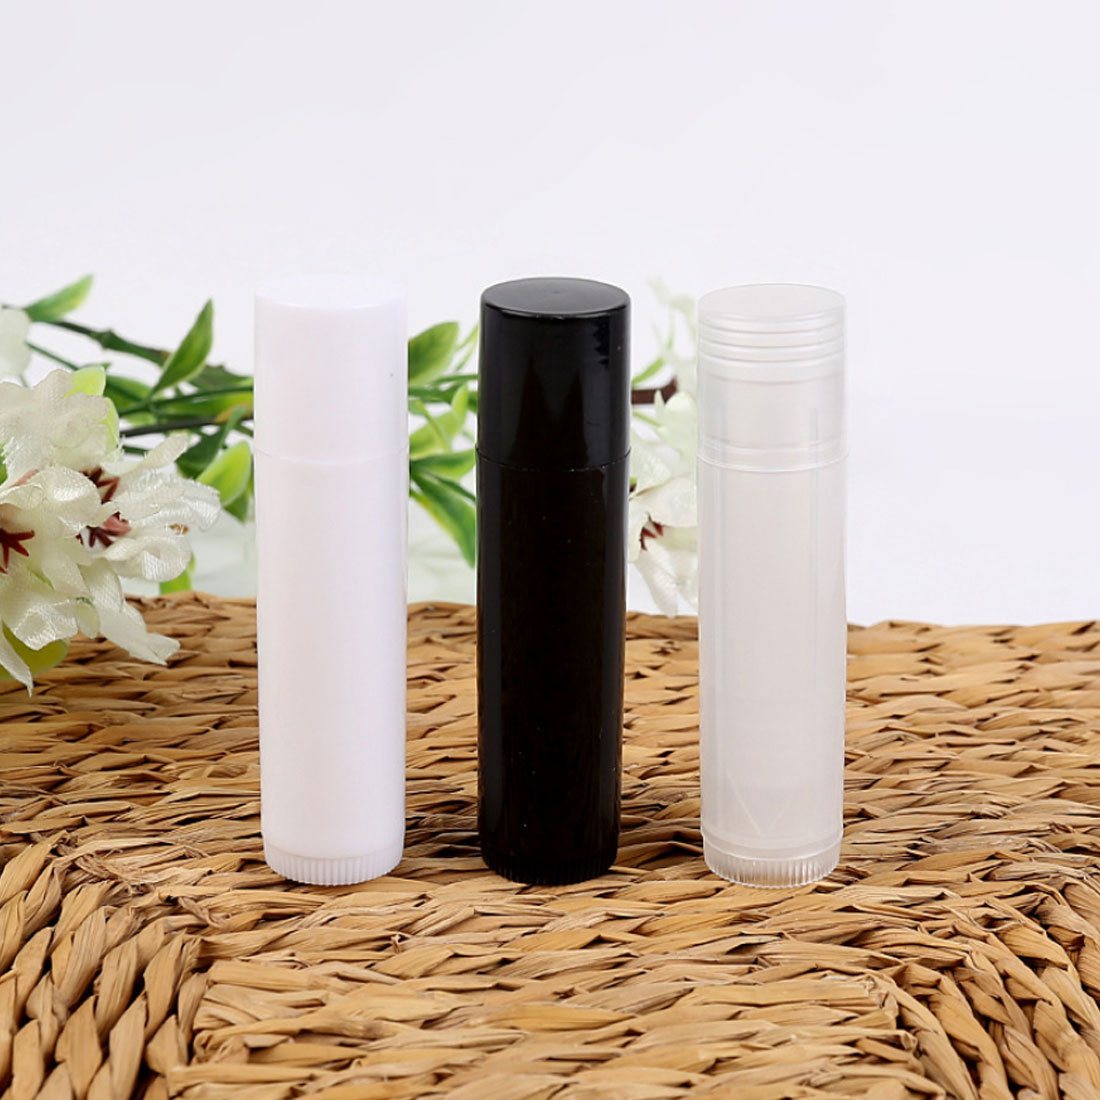 New arrival  50pcs/Lot Empty Plastic Clear LIP BALM Tubes Containers Lipstick Fashion Cool Lip Tubes Refillable Bottles 50pcs plastic ldpe squeezable dropper bottles eye liquid empty new 88 hjl2017